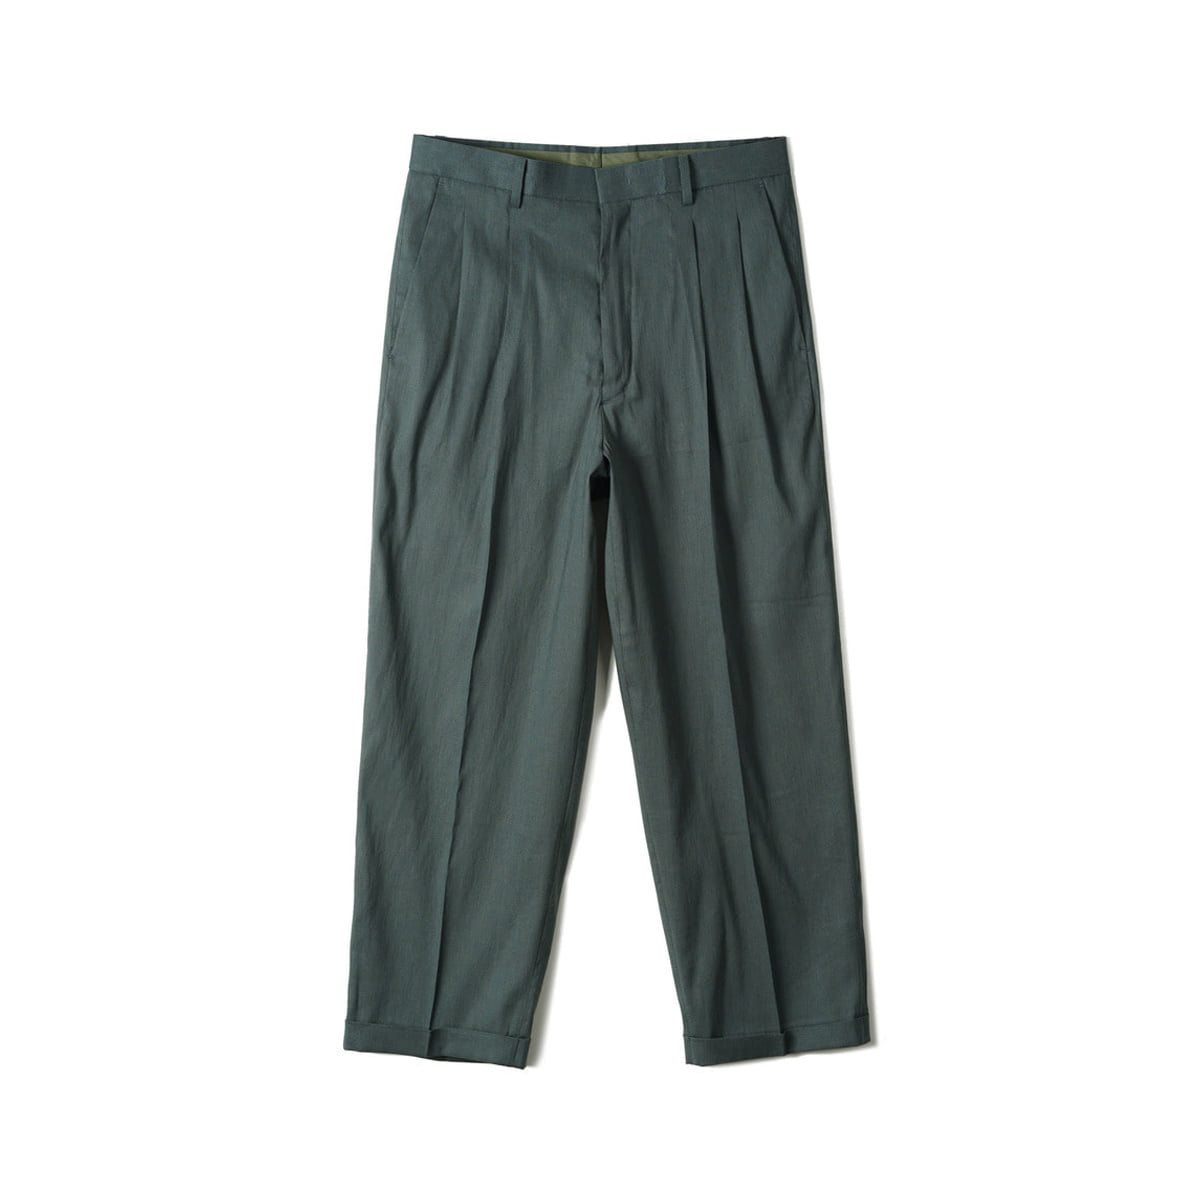 [OOPARTS] TWO PLEAT CLASSIC PANTS 'GREEN'